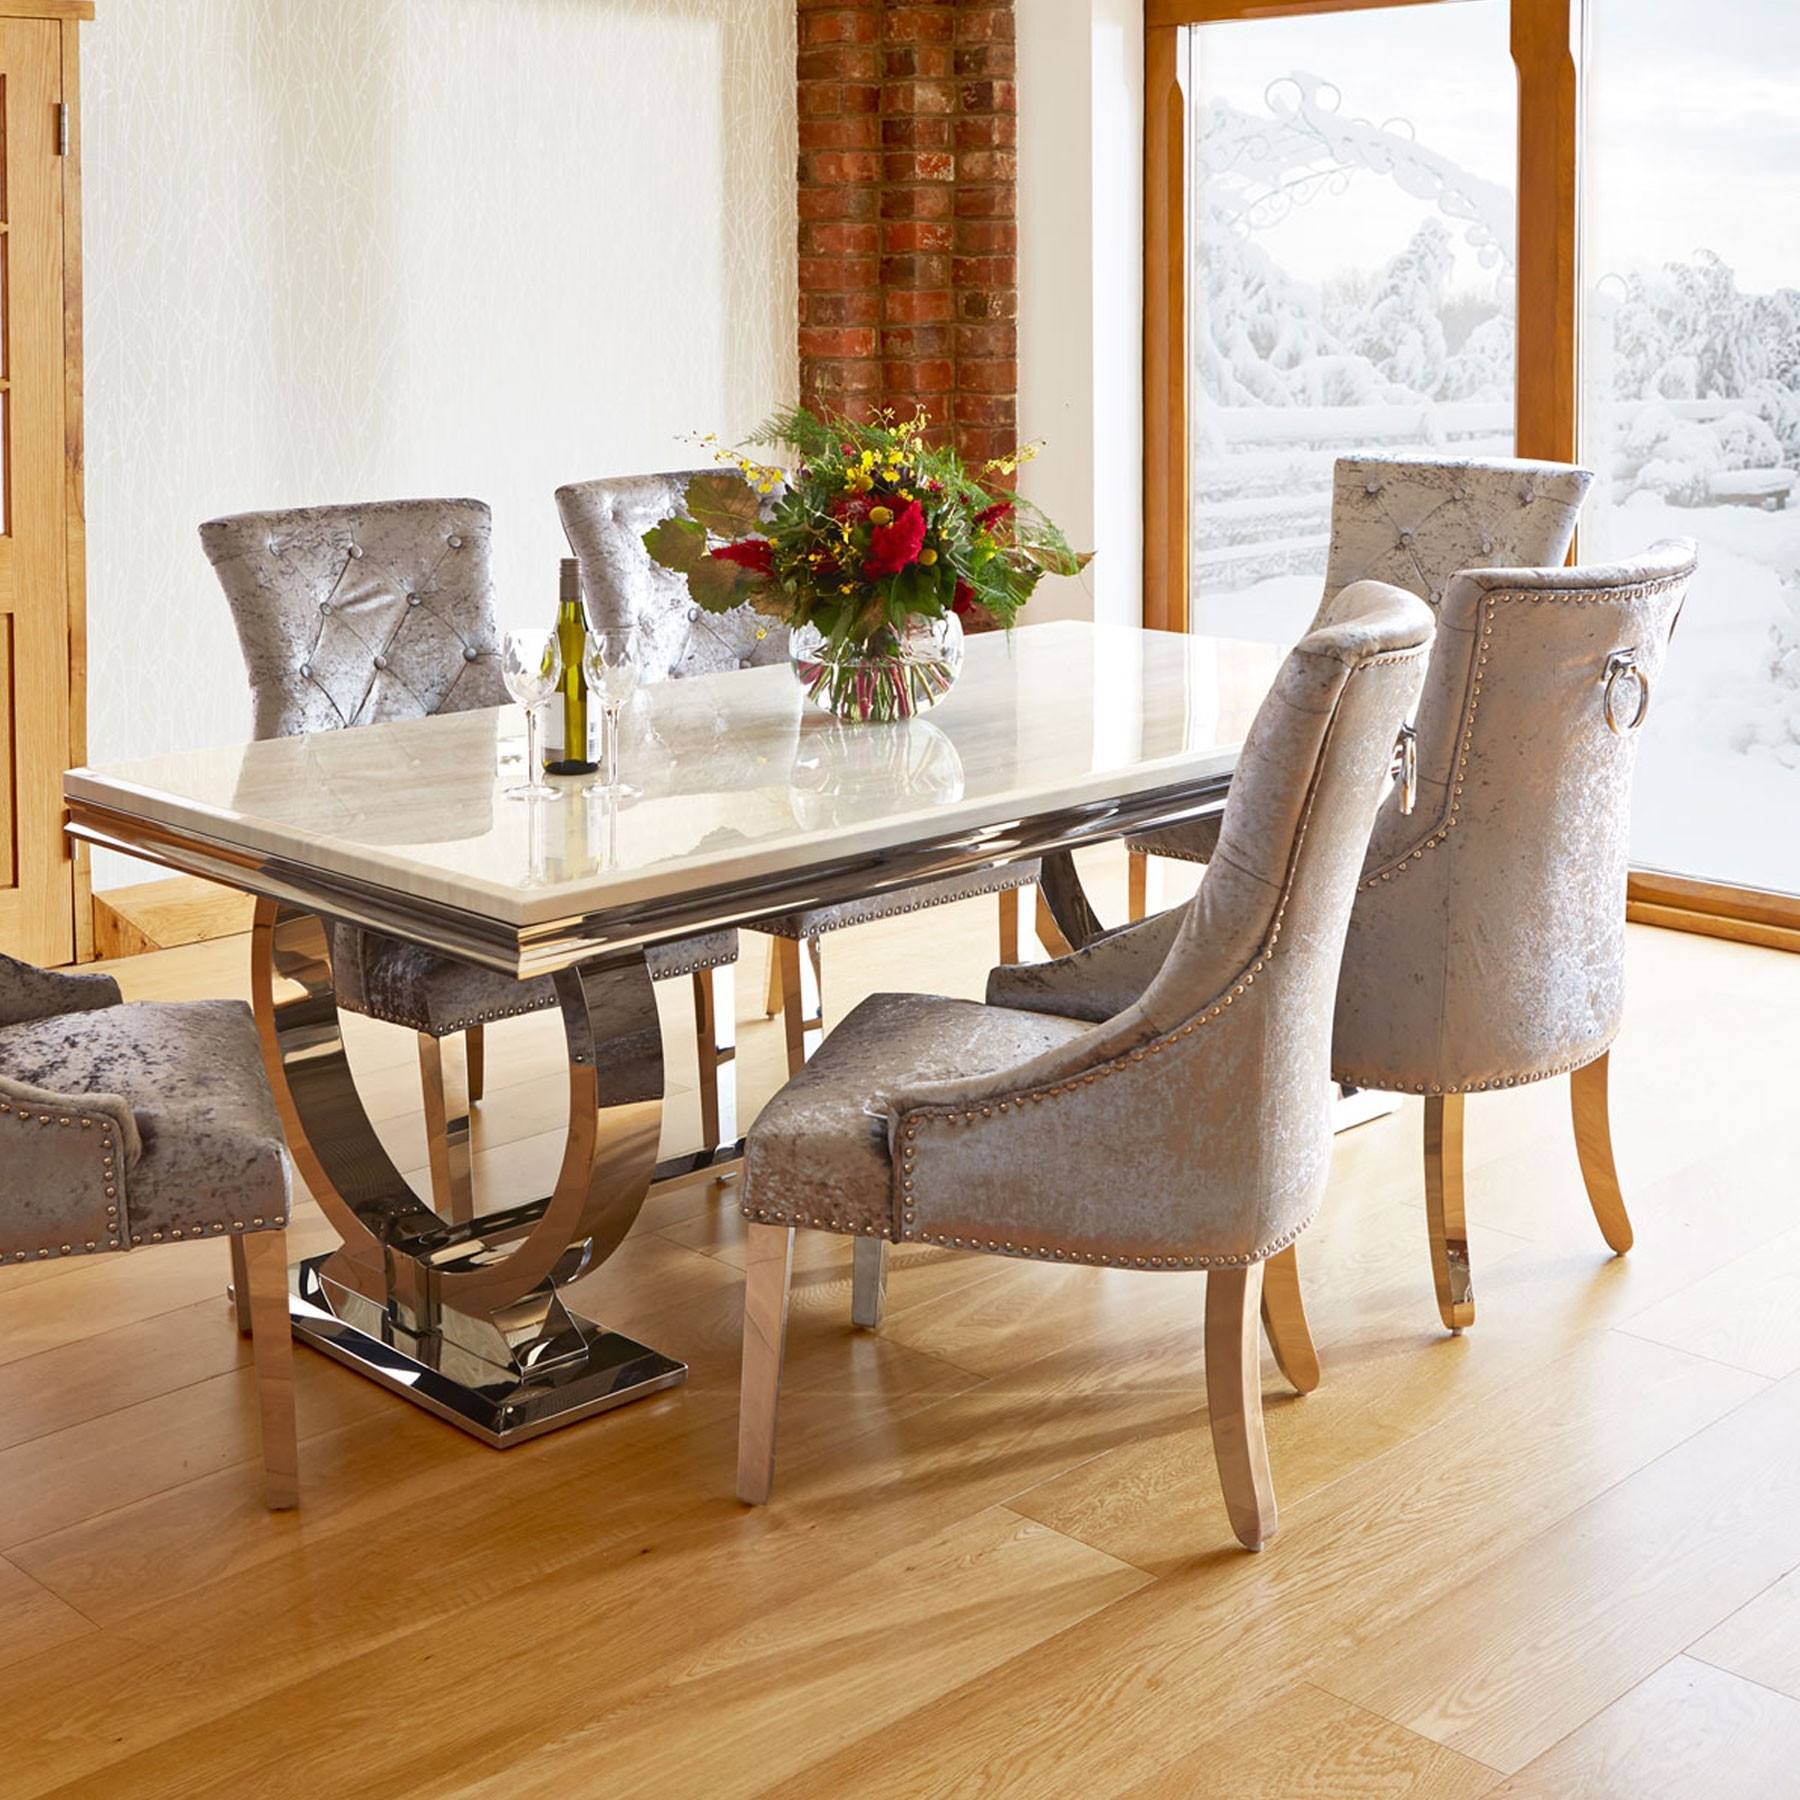 Chrome Dining Room Sets With Newest Renata Marble And Chrome Dining Table & 6 Silver Louis Chairs (Gallery 2 of 25)